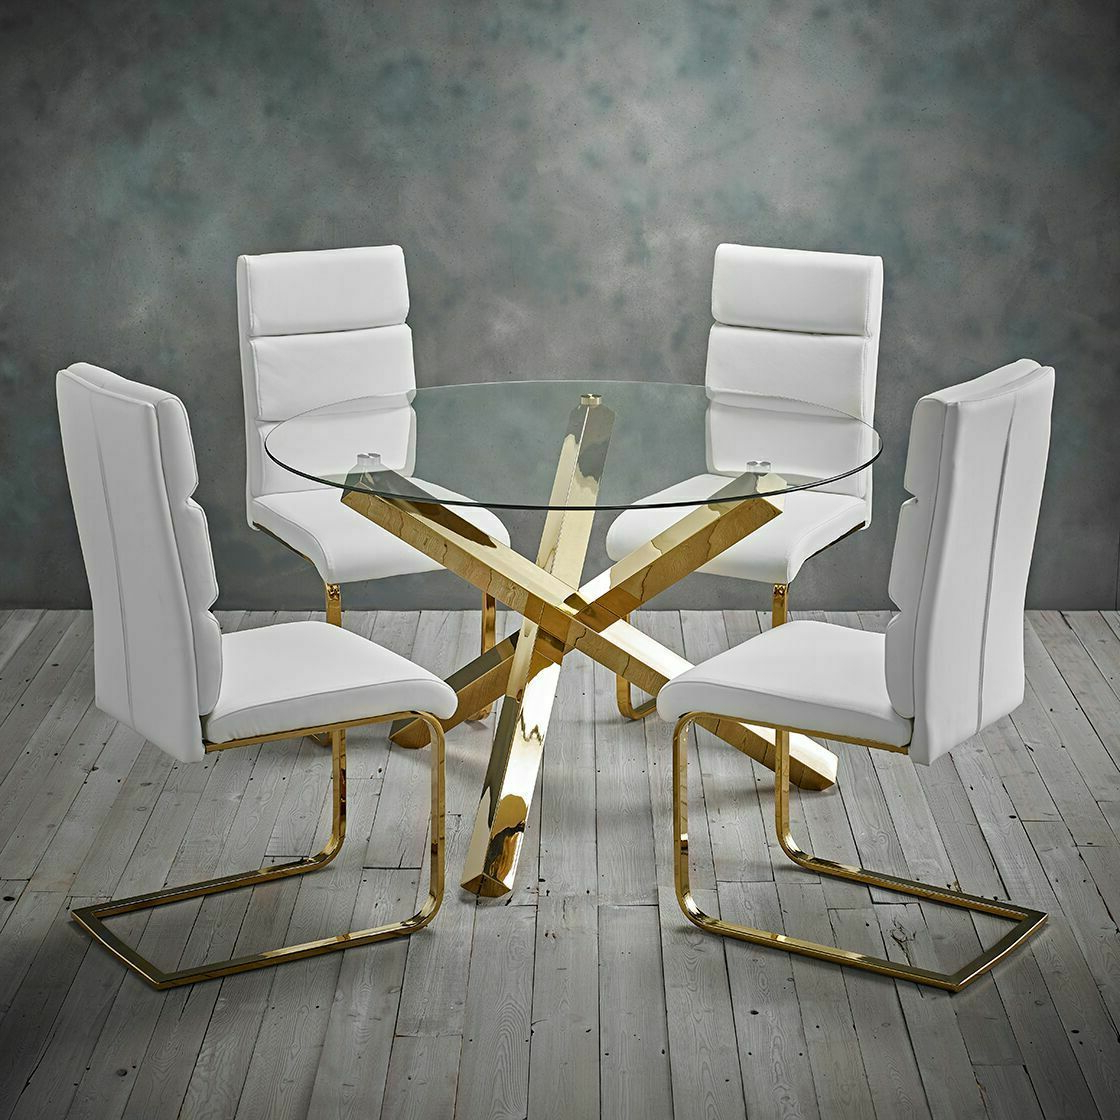 Modern Polished Gold Round Clear Glass Dining Table With Well Liked Modern Gold Dining Tables With Clear Glass (View 14 of 30)